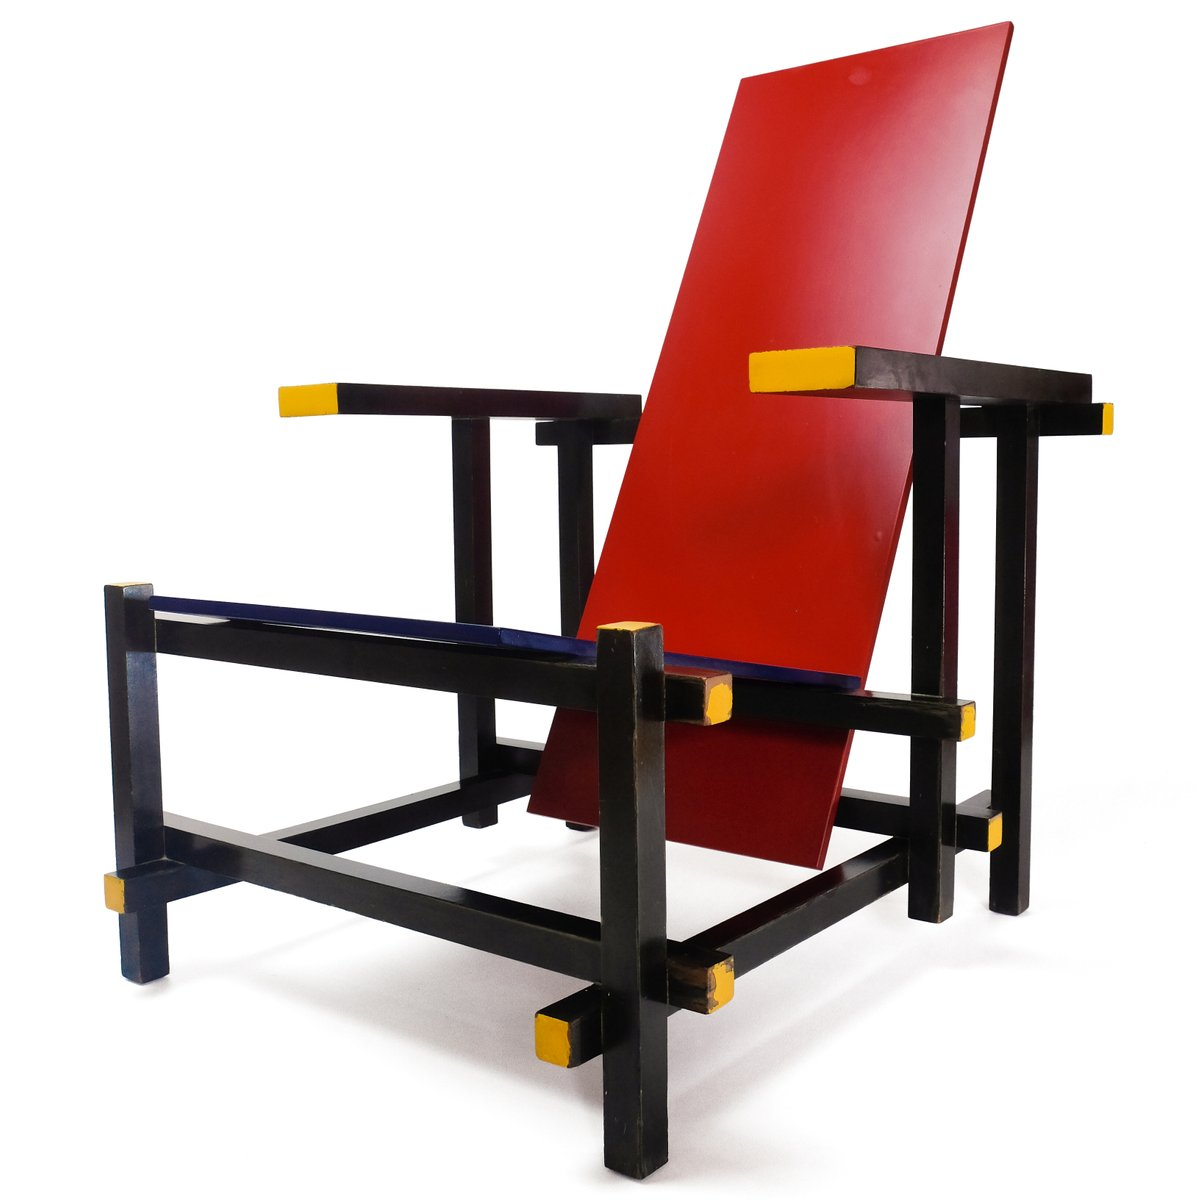 Elegant Red U0026 Blue Chair By Gerrit Thomas Rietveld For Cassina, 1970s